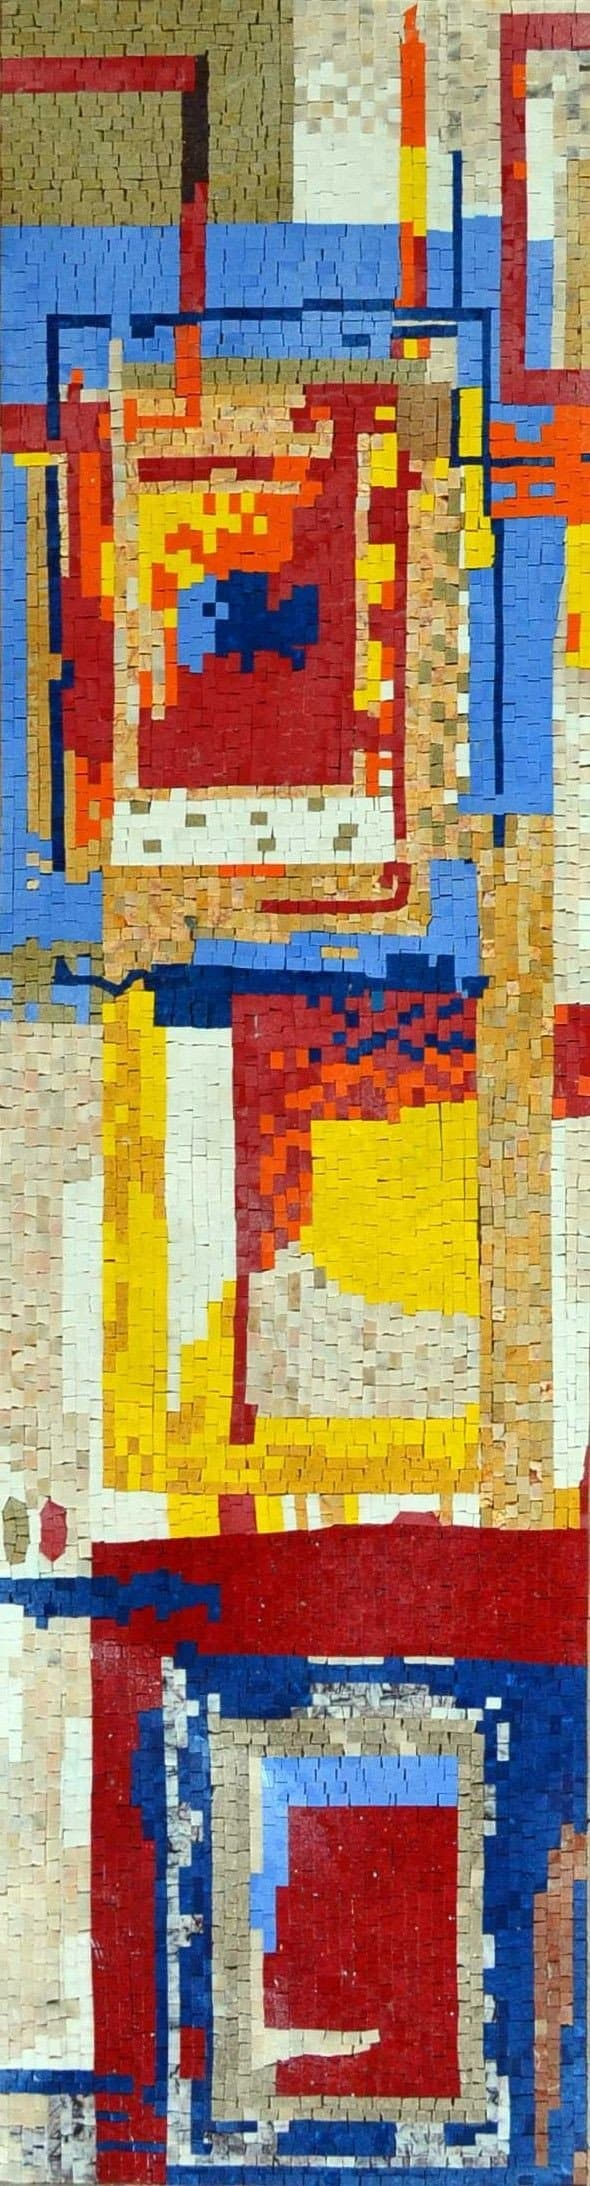 Modern Mosaic Art Colorful Abstract Patterns Abstract